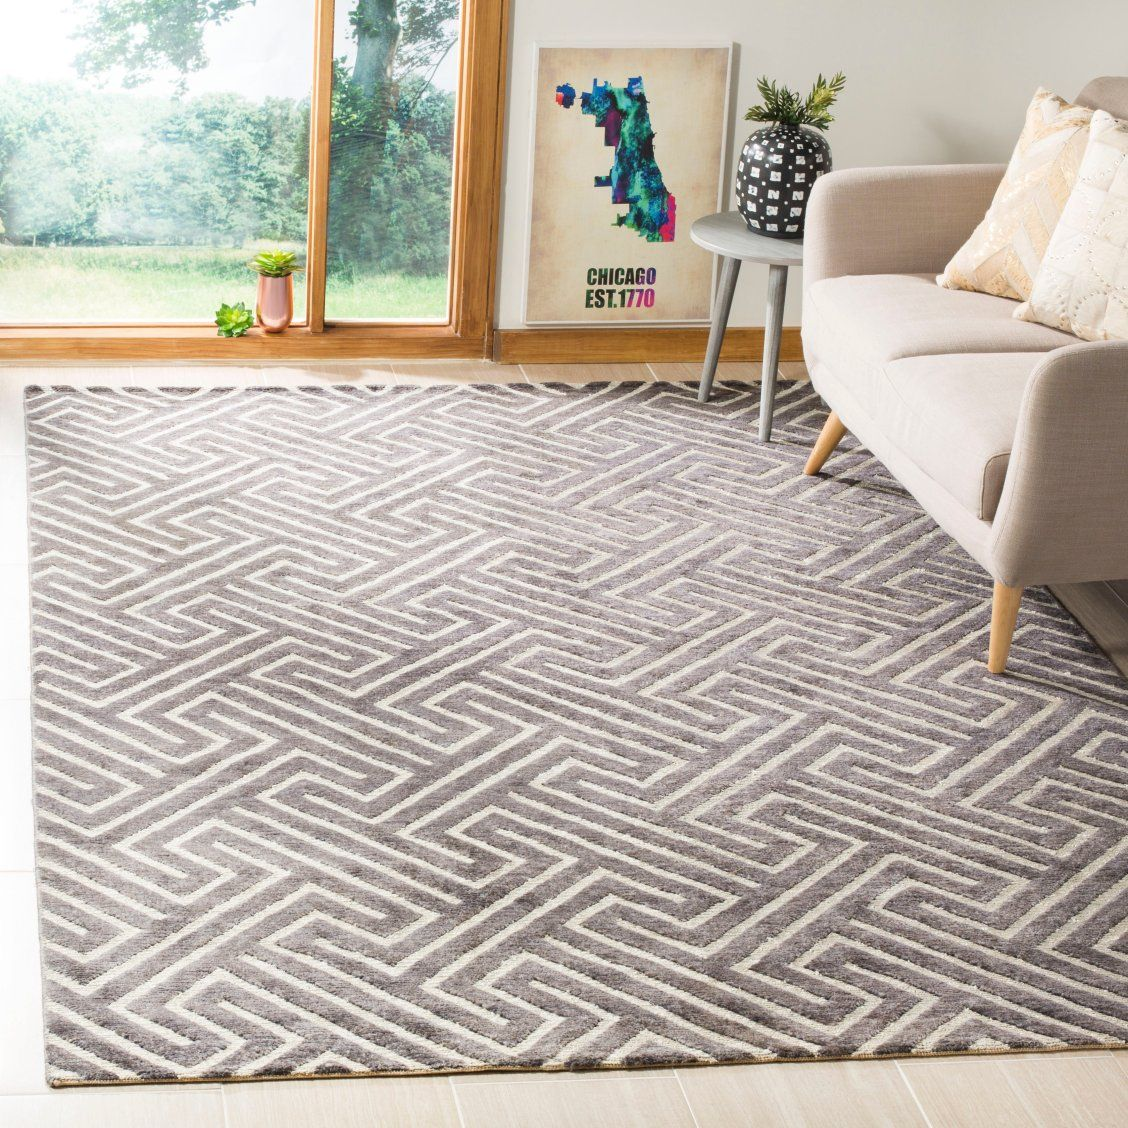 Using Two Ancient Weaves Distinguishes This Transitional Rug From The Santa Fe Collection By Safavieh Crafted With Contrasting Wool Cut Pile In Black